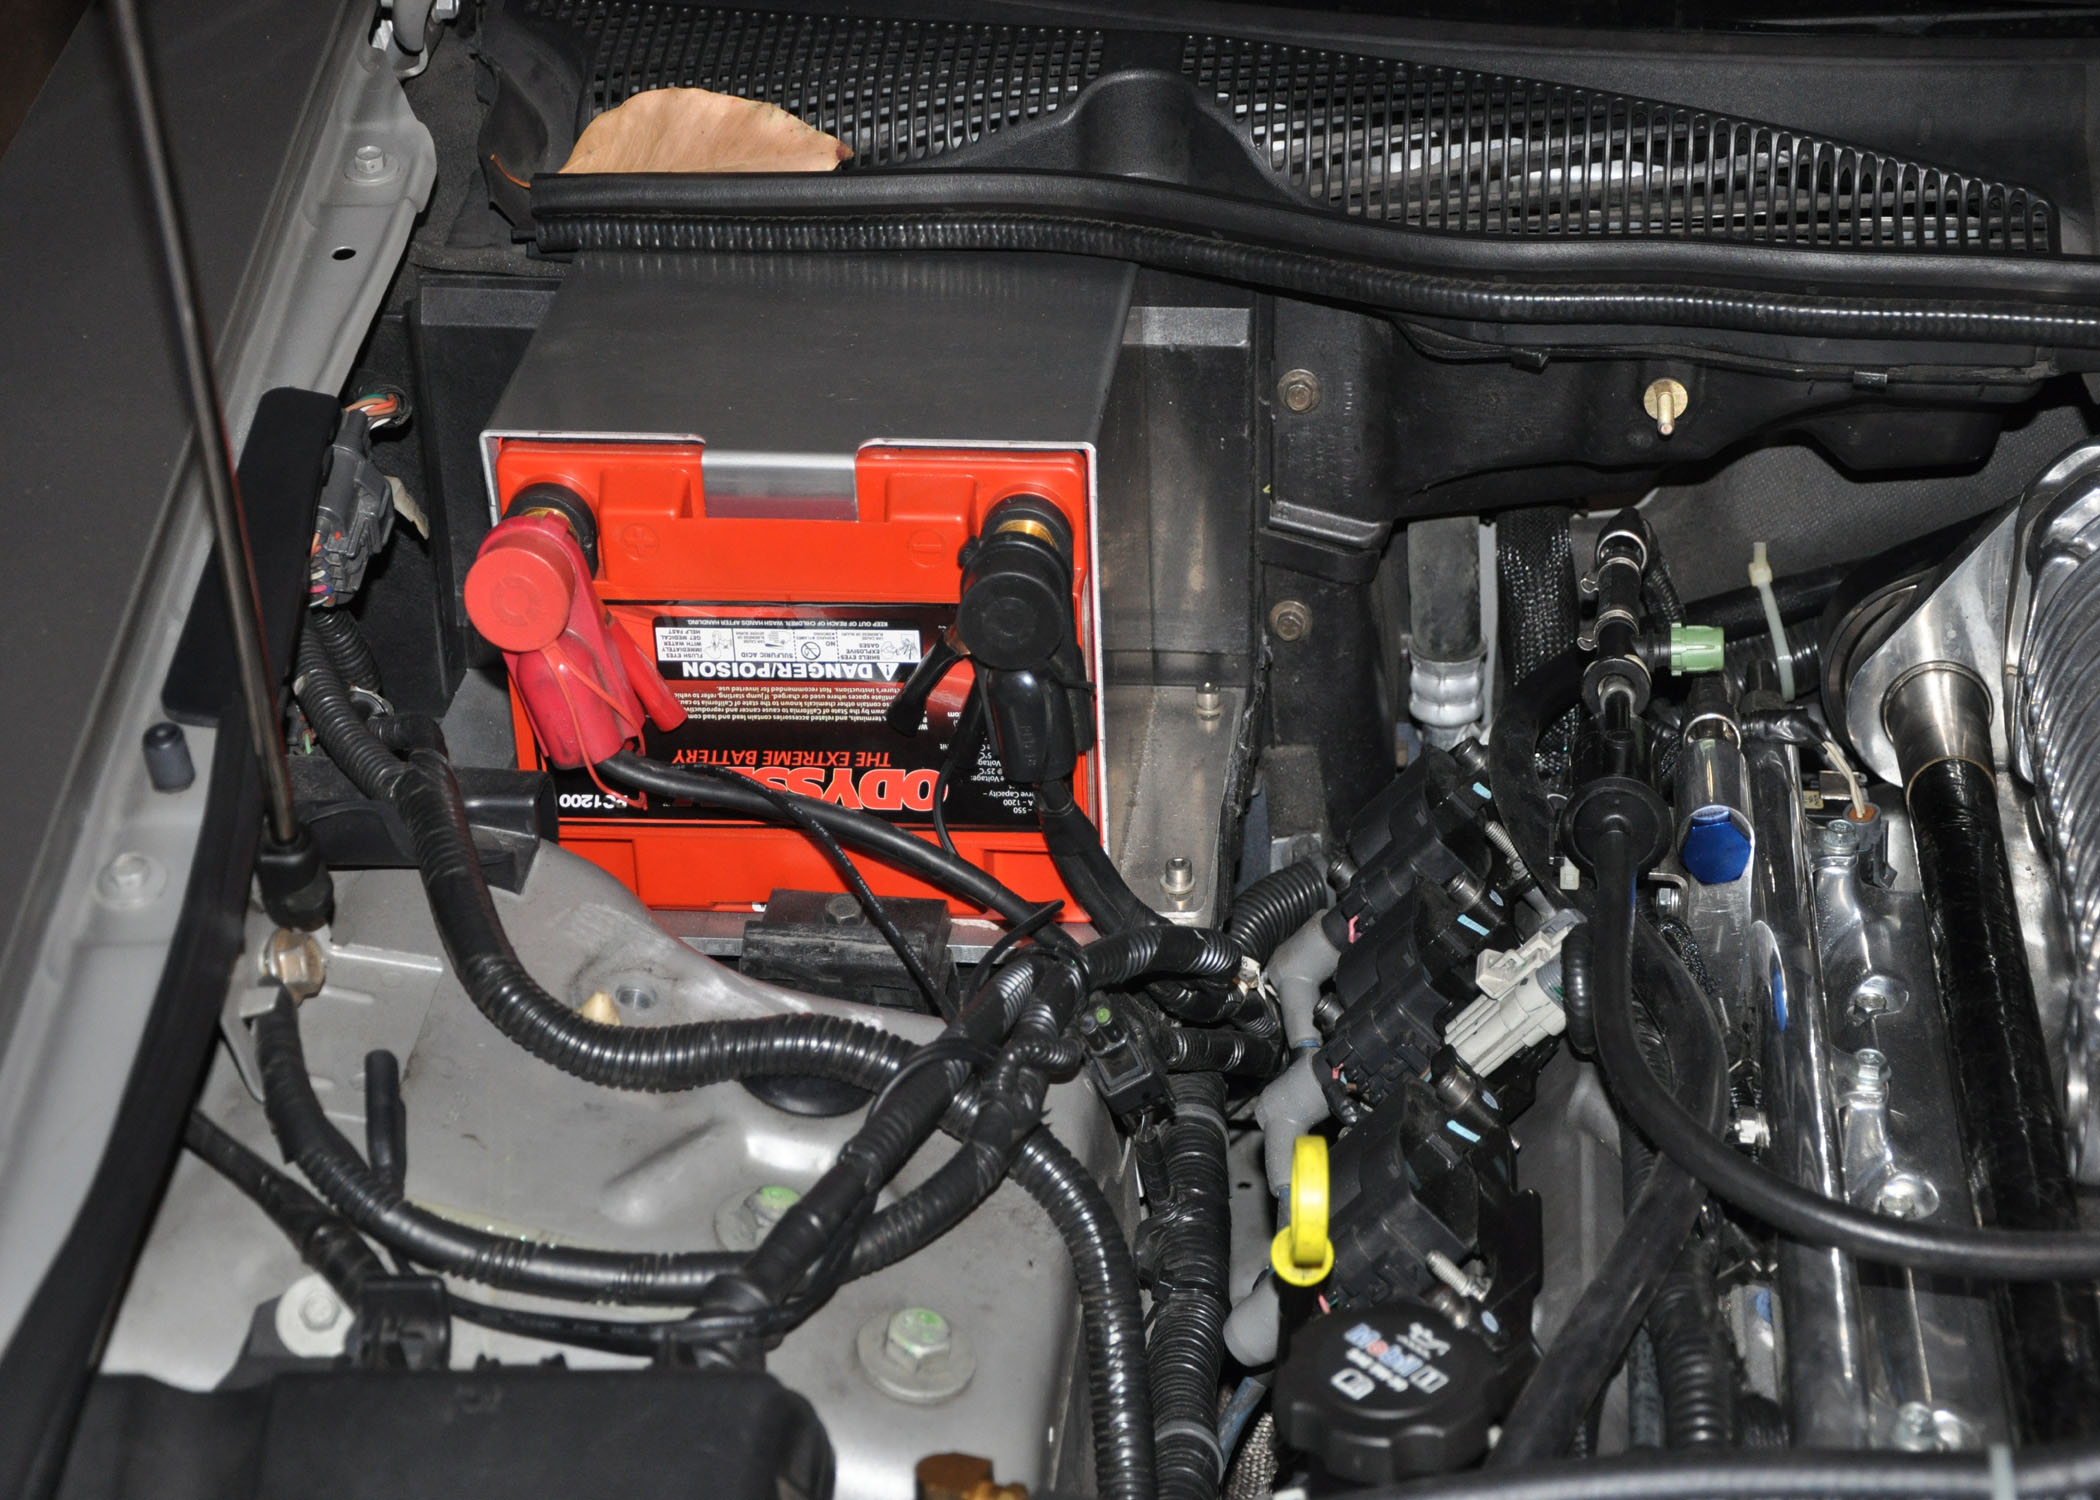 Cadillac Sts Fuse Box Battery Change To An Optima Redtop Weight Added 5 Pounds